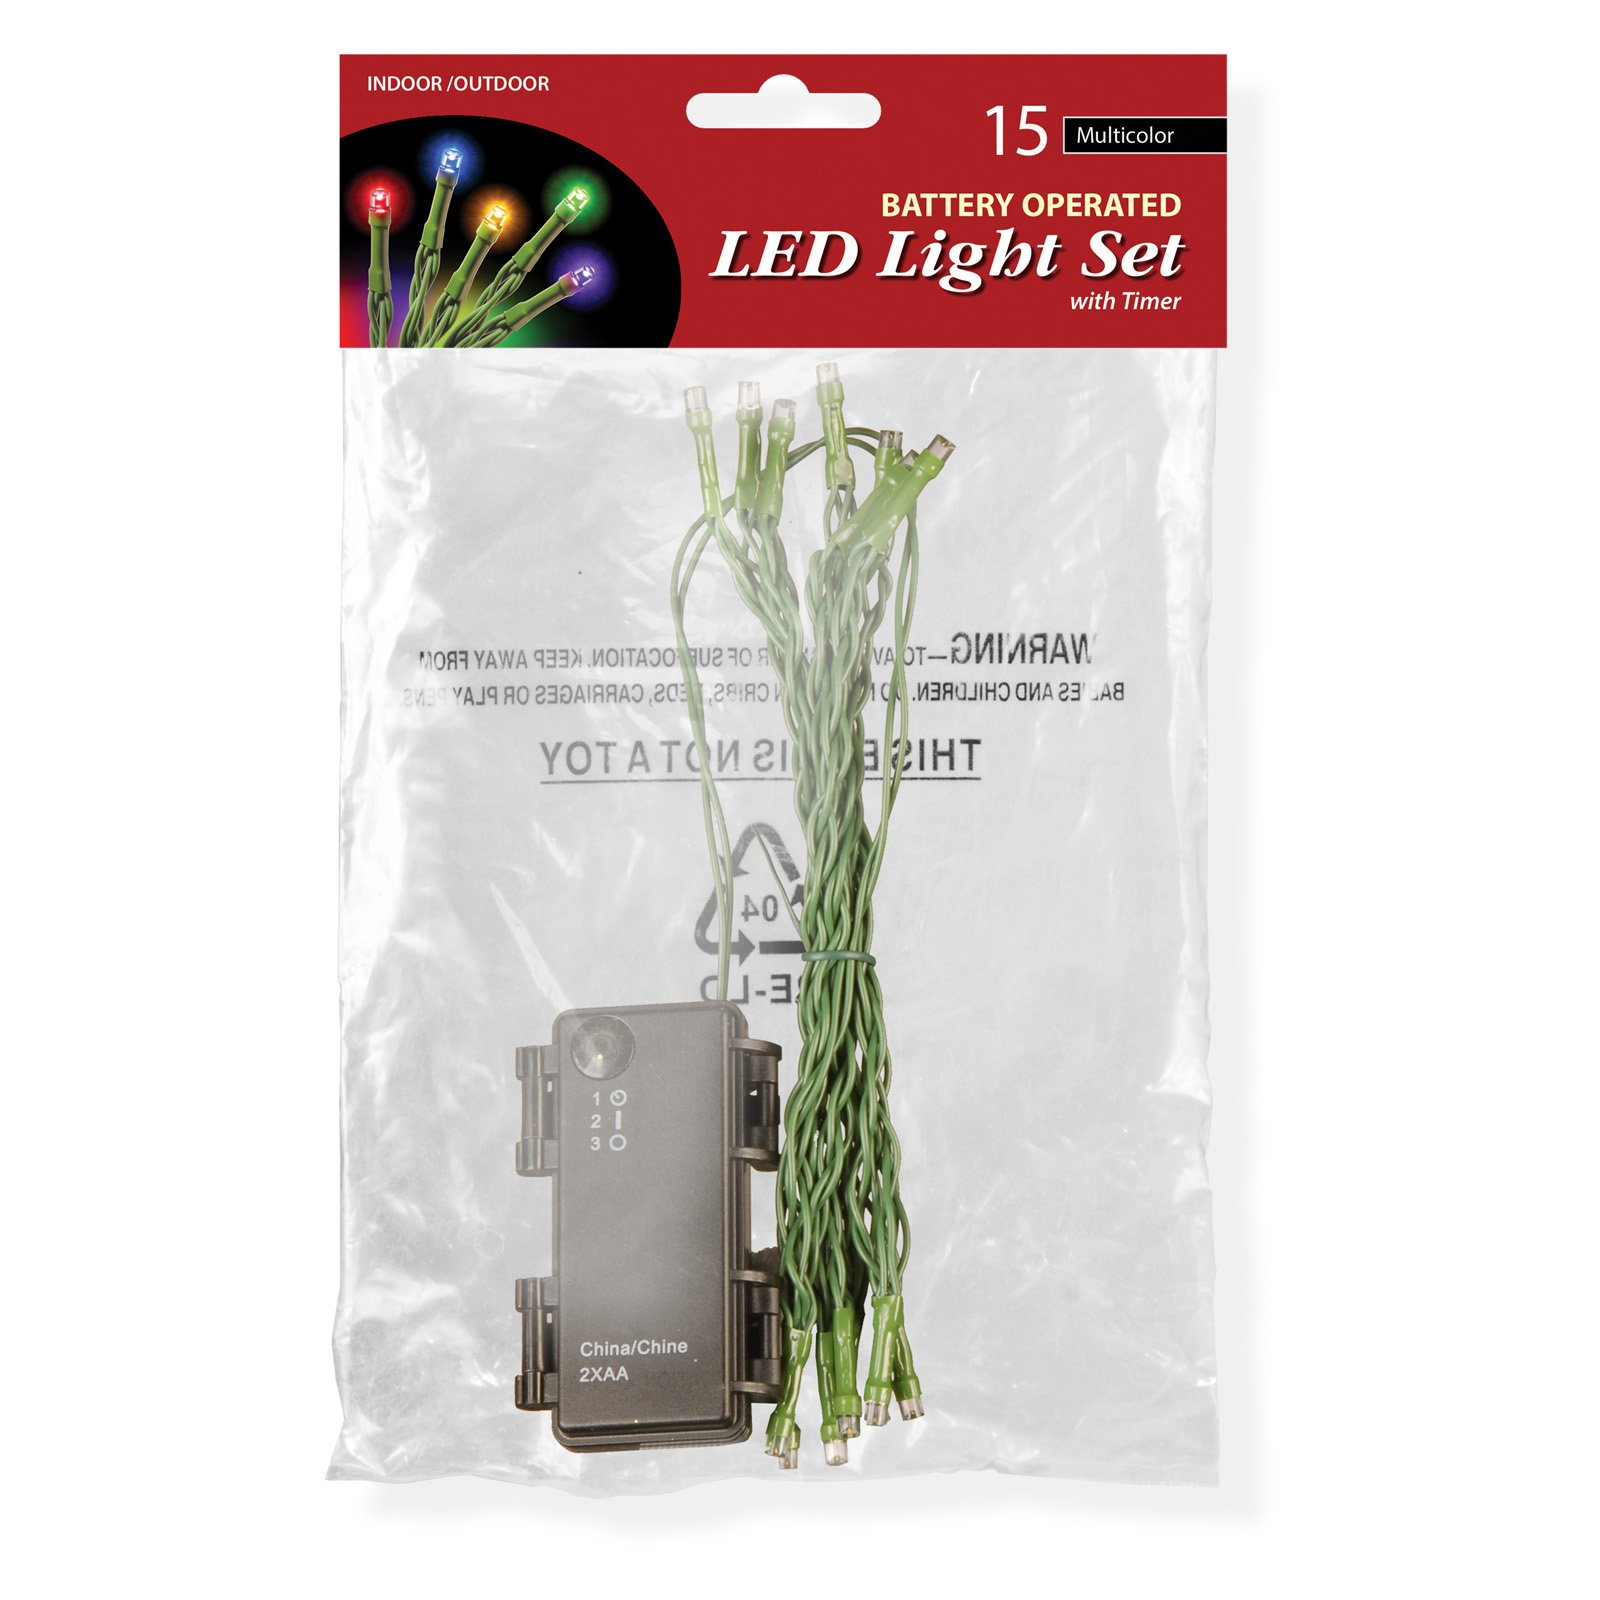 Battery Operated LED Light String Set, 15 Bulb, Multicolor